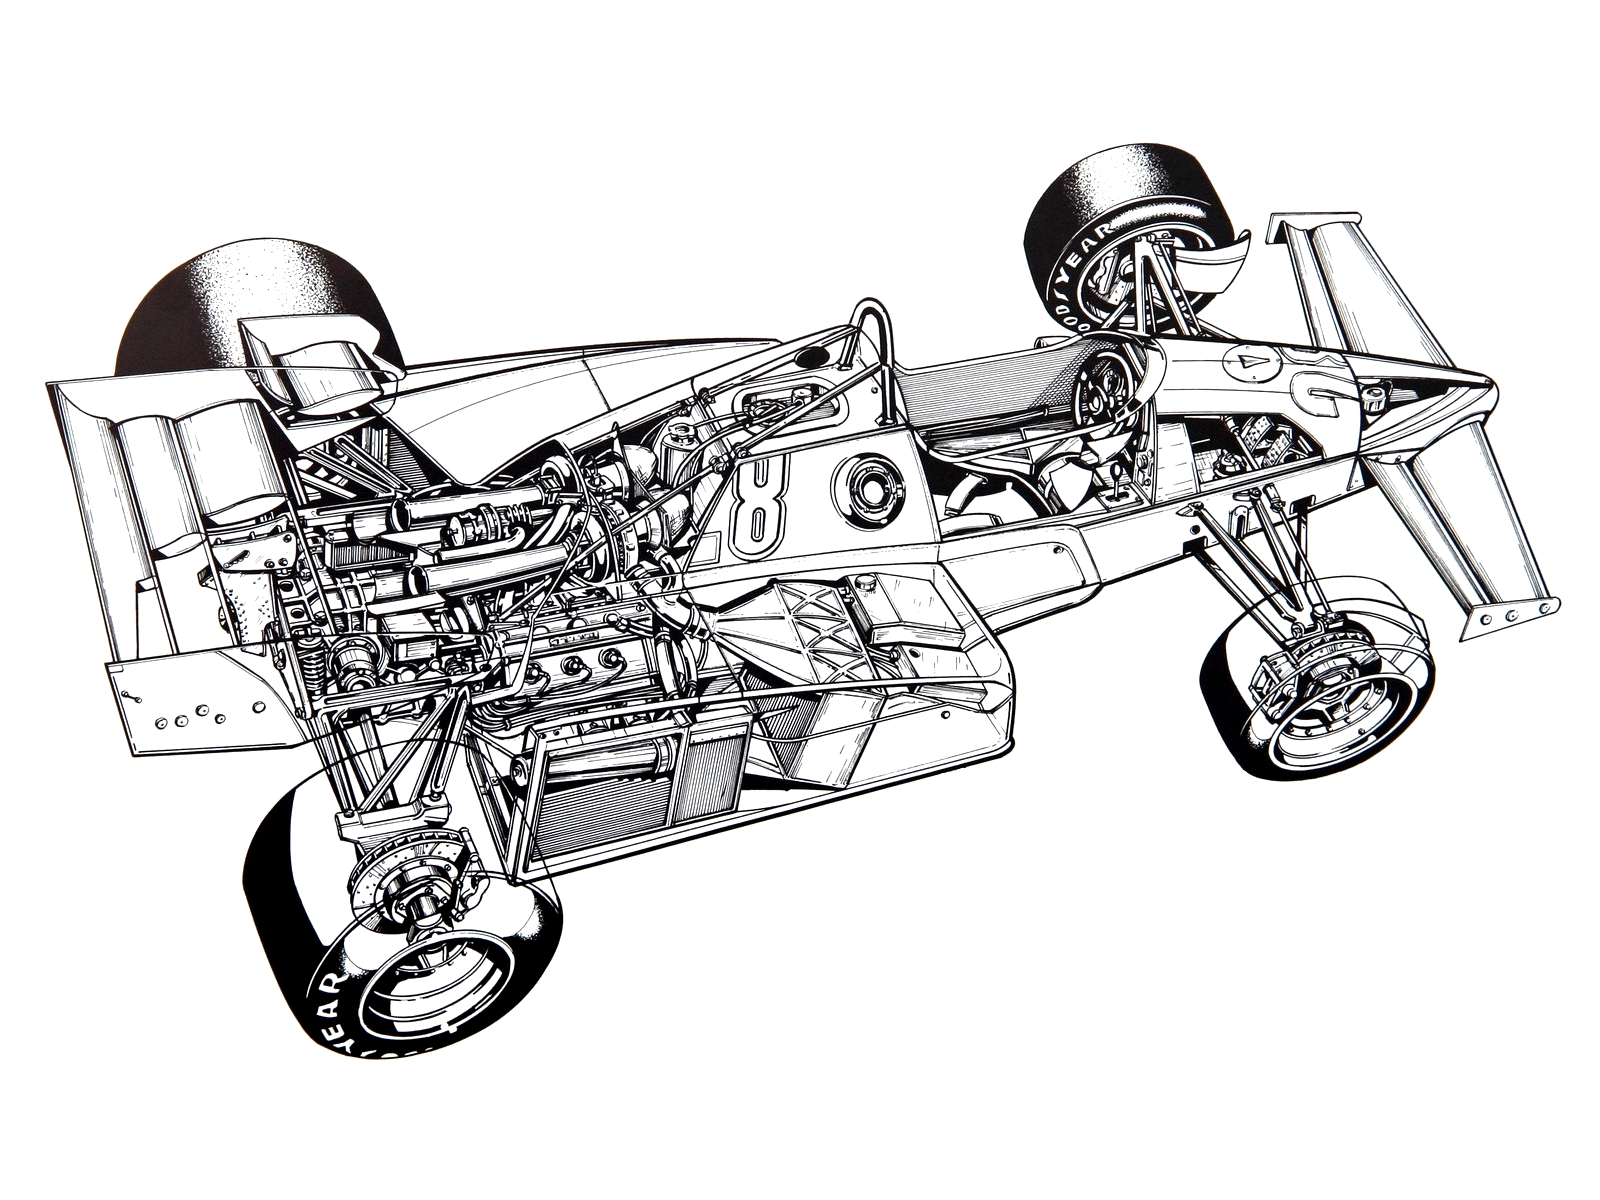 Racecar Drawing